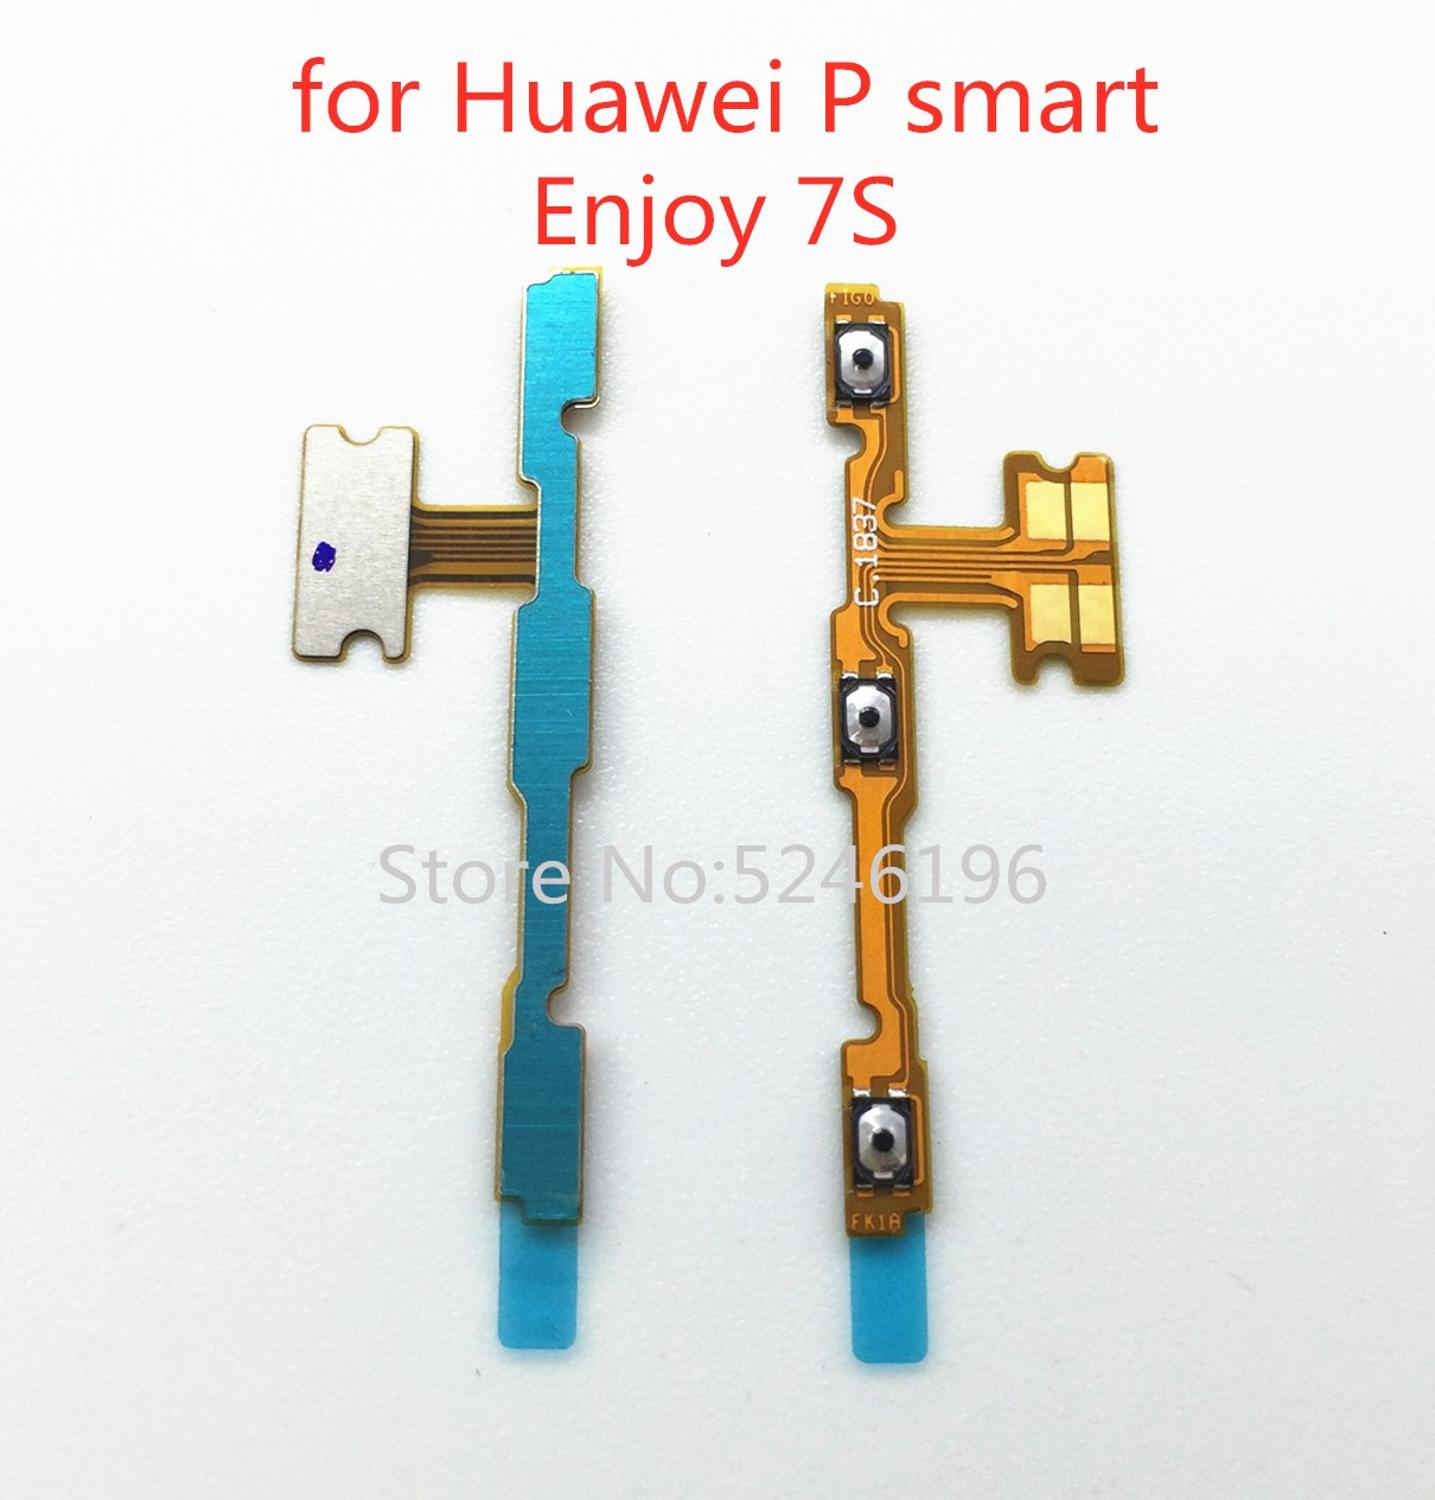 For Huawei P Smart / Enjoy 7S FIG-LX1 Power Switch On/Off Button Volume Key Button Flex Cable FIG-LA1-LX2-LX3replacement Parts